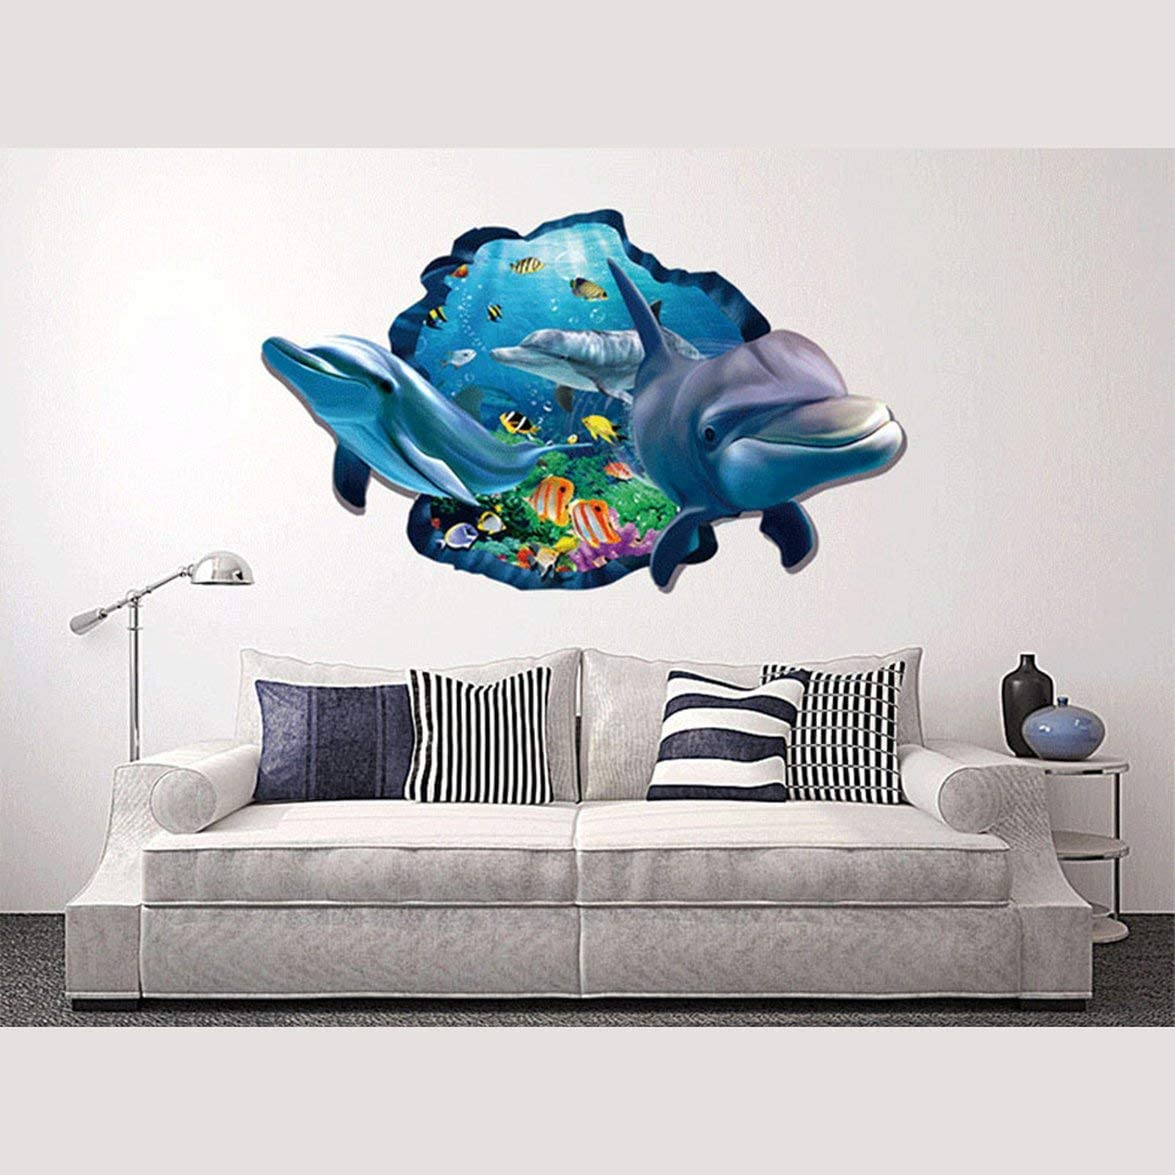 Pandamama Sea Dolphin Removable Self-Adhesive Window Wall Stickers Decal Decor Exquisite Wall Stickers for Home Decoration